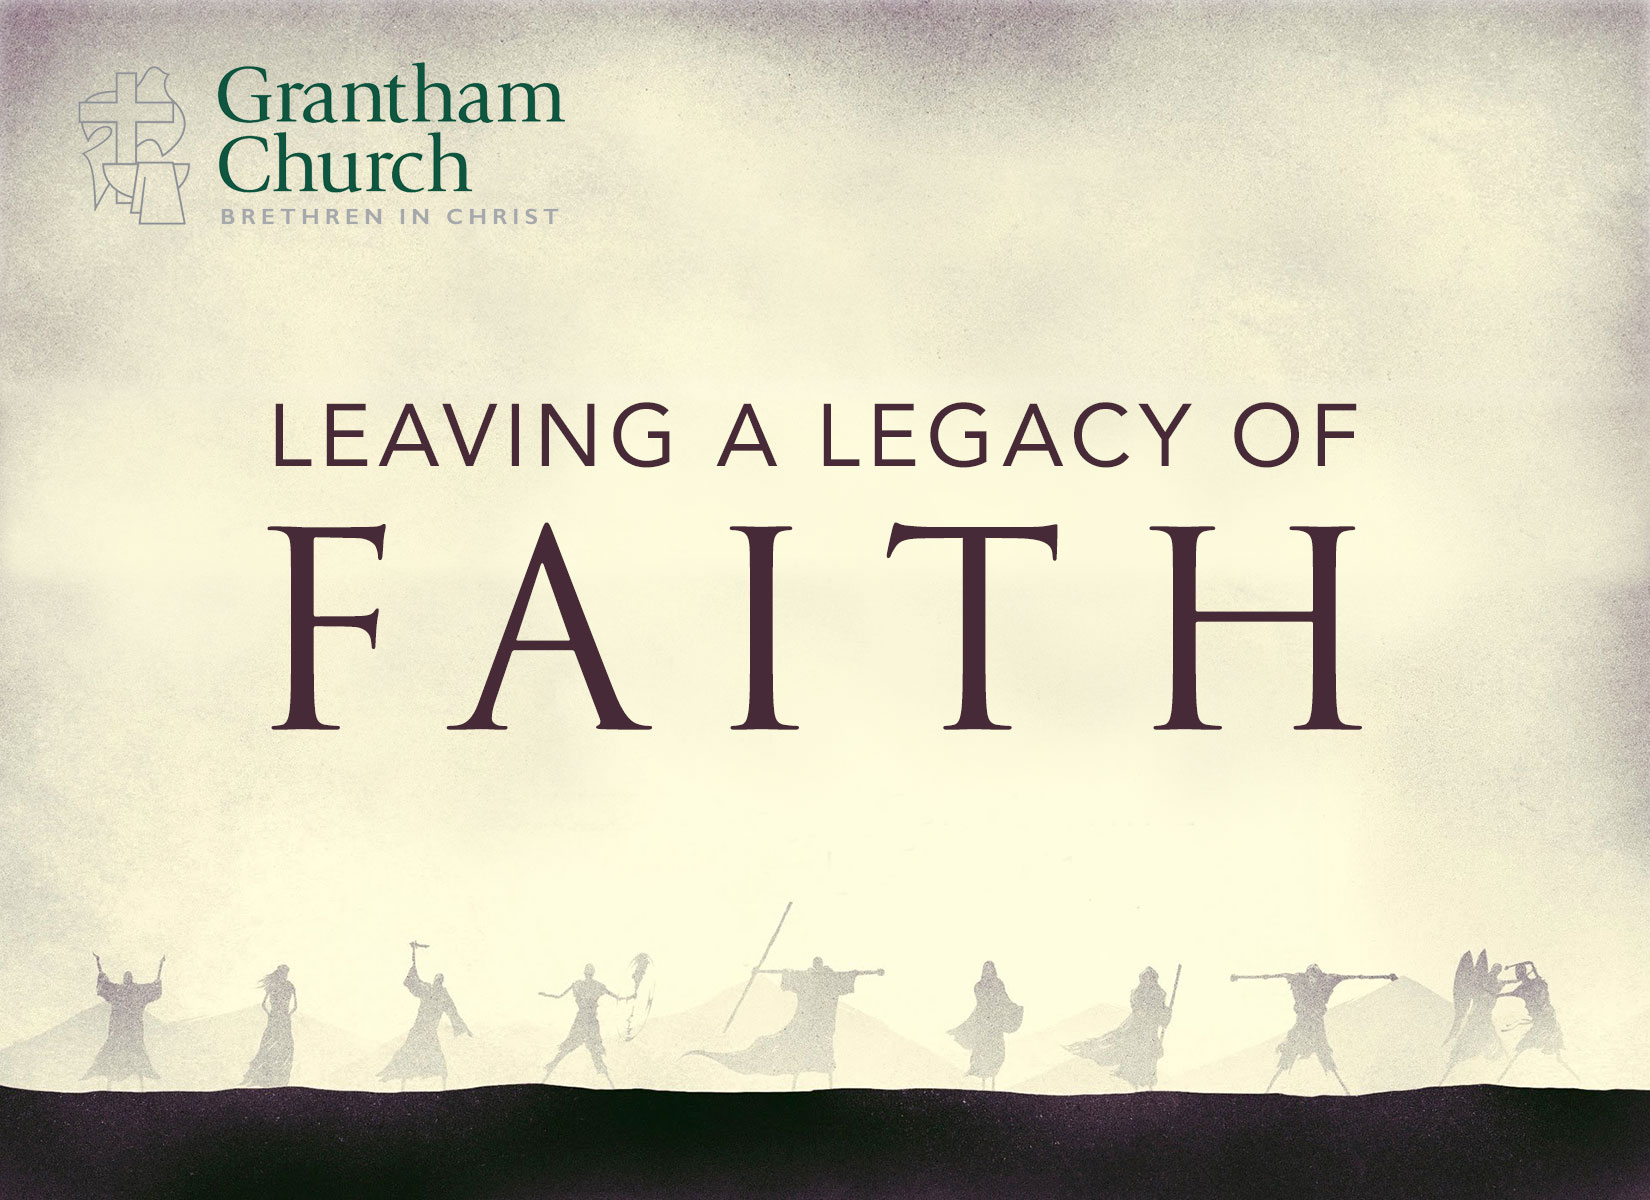 legacy-of-faith-slide1118a.jpg